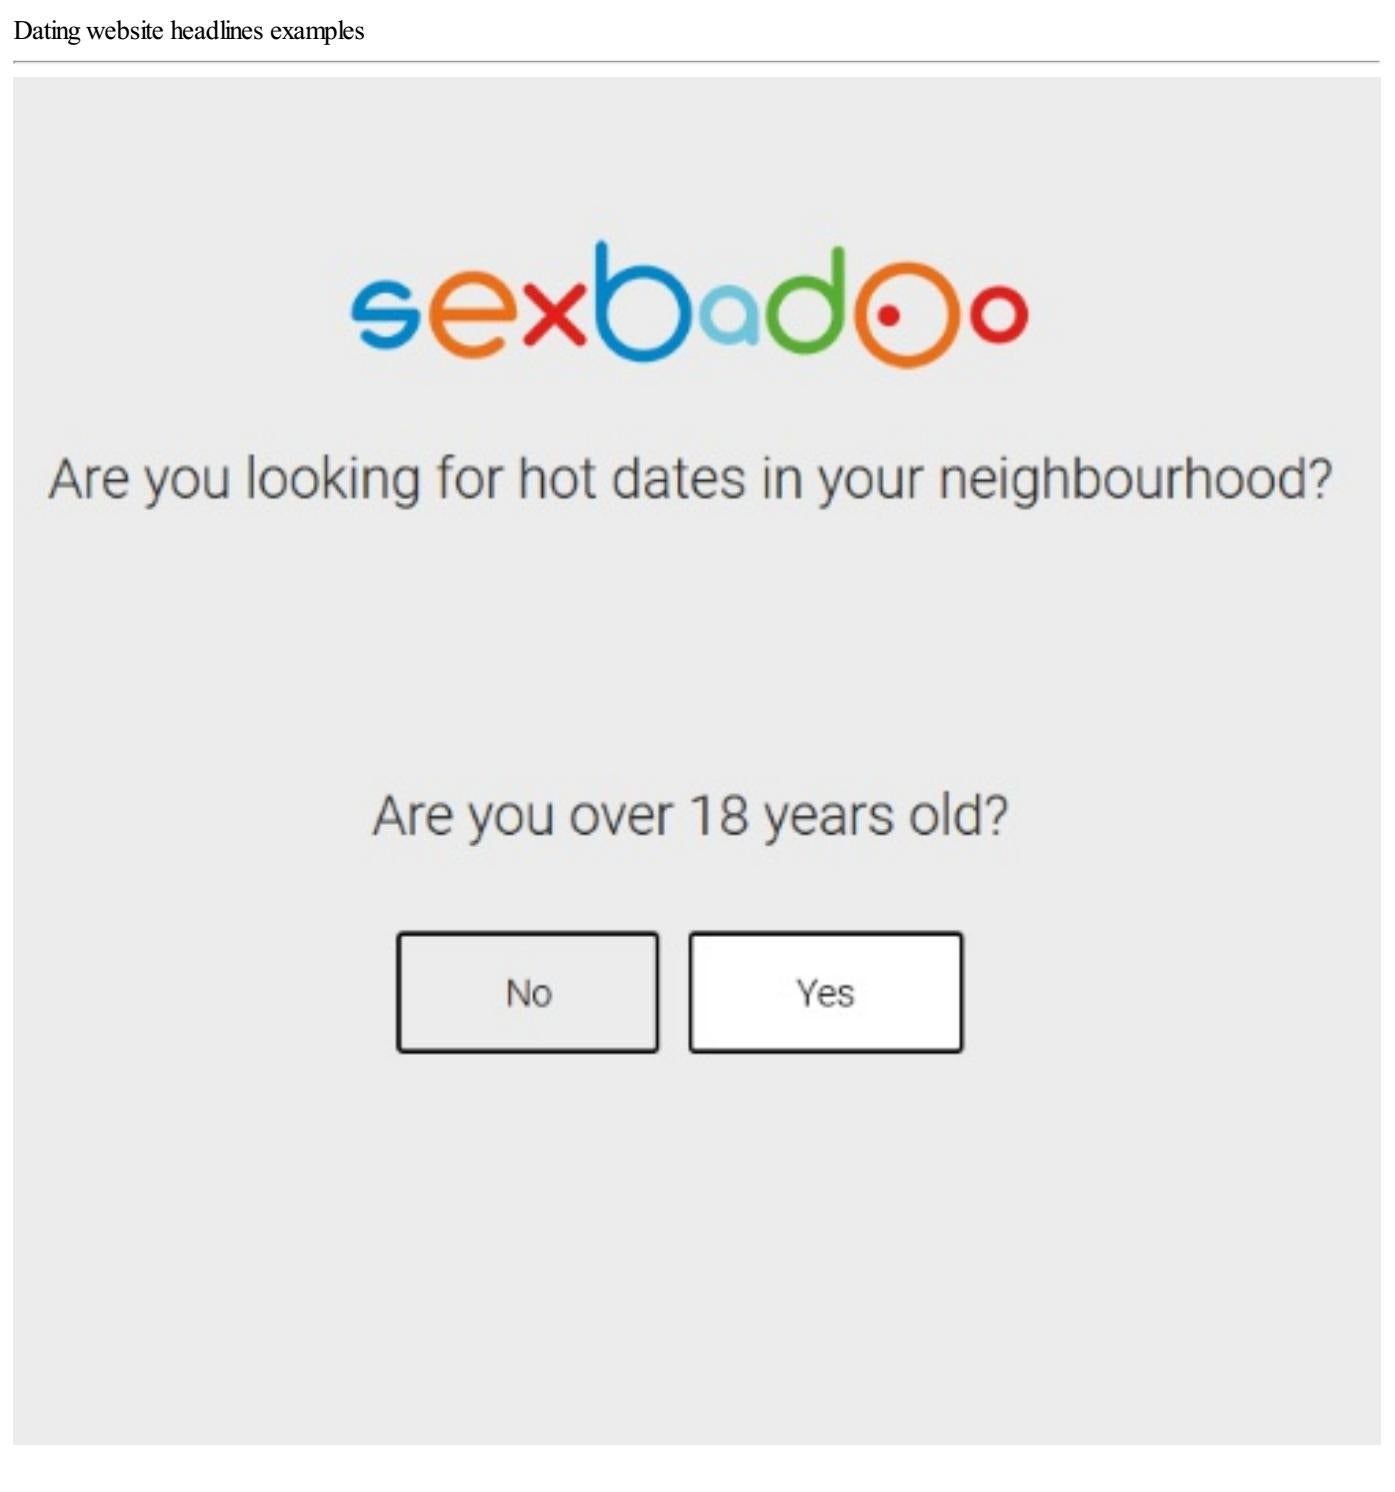 Headline for dating sites examples